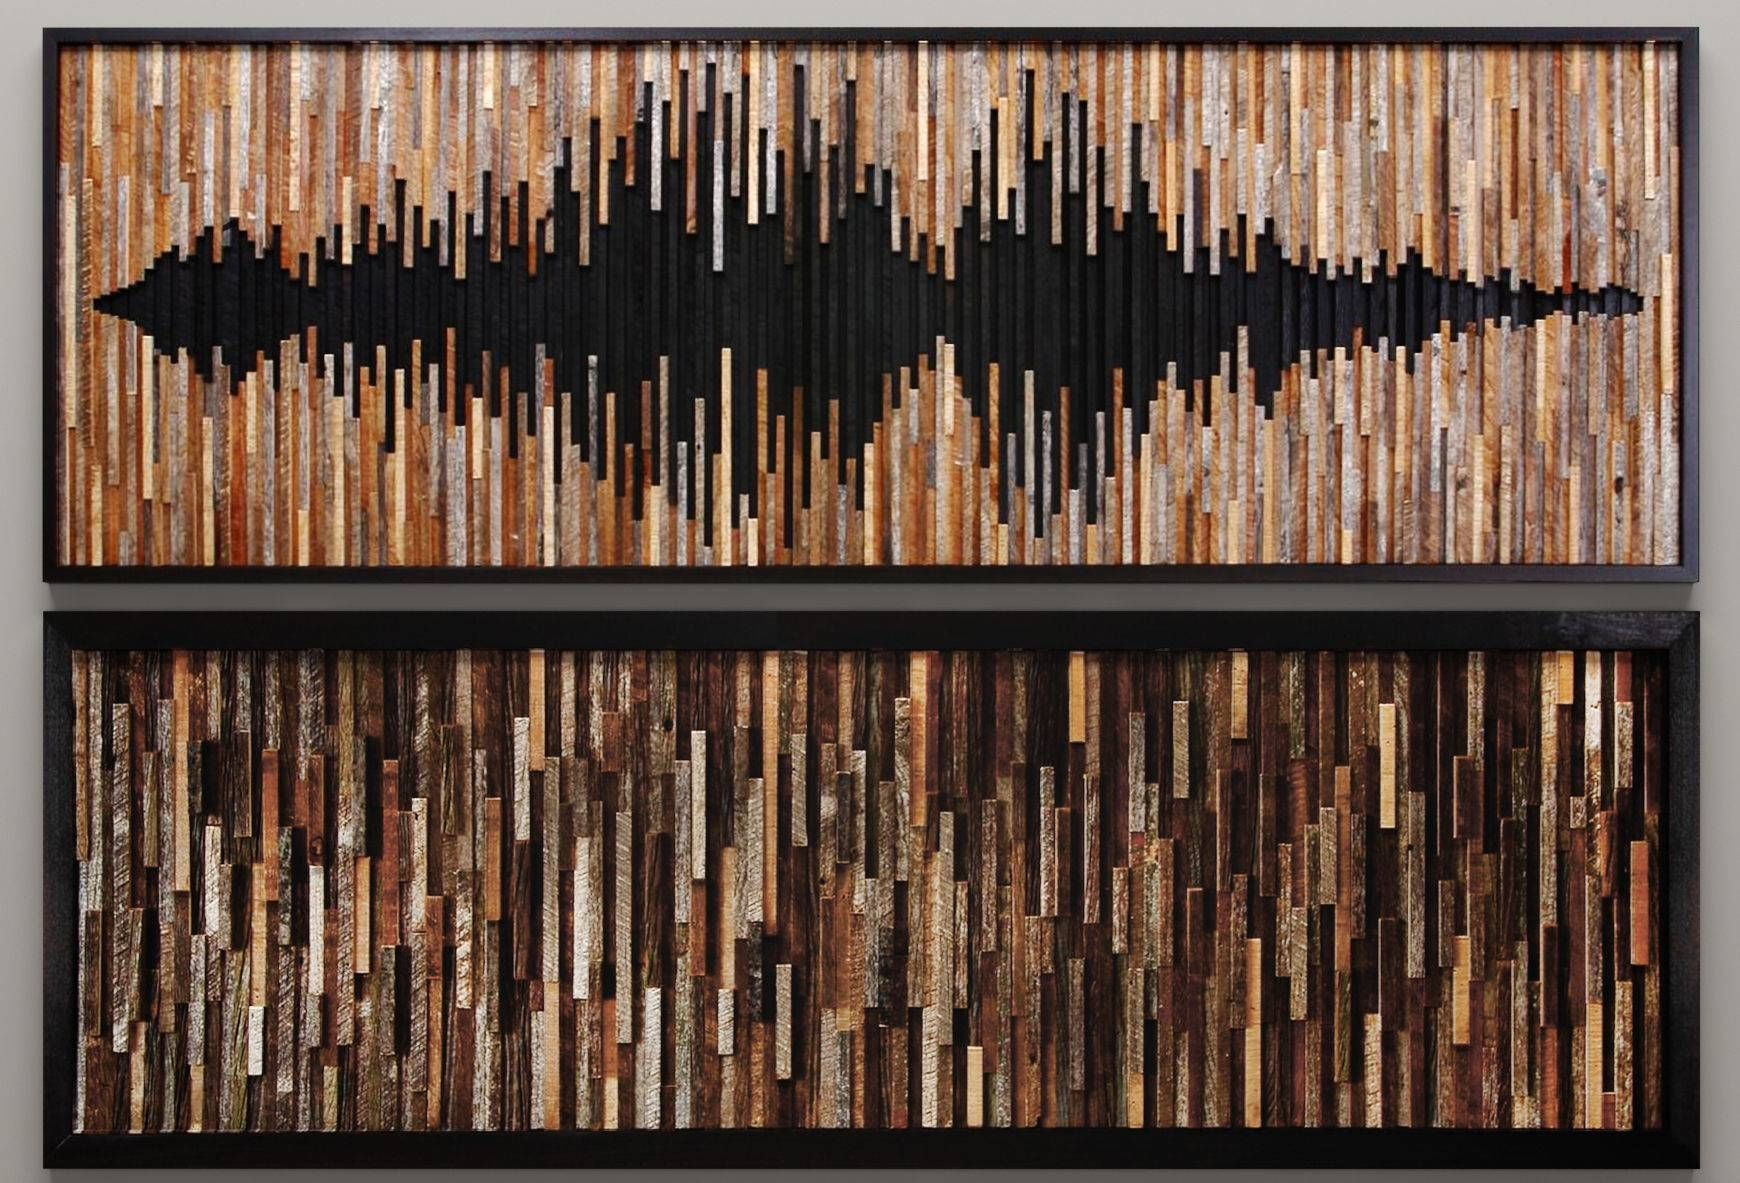 Wood Wall Art 46 3D Model | Cgtrader In Most Up To Date Wood Wall Art (Gallery 15 of 25)